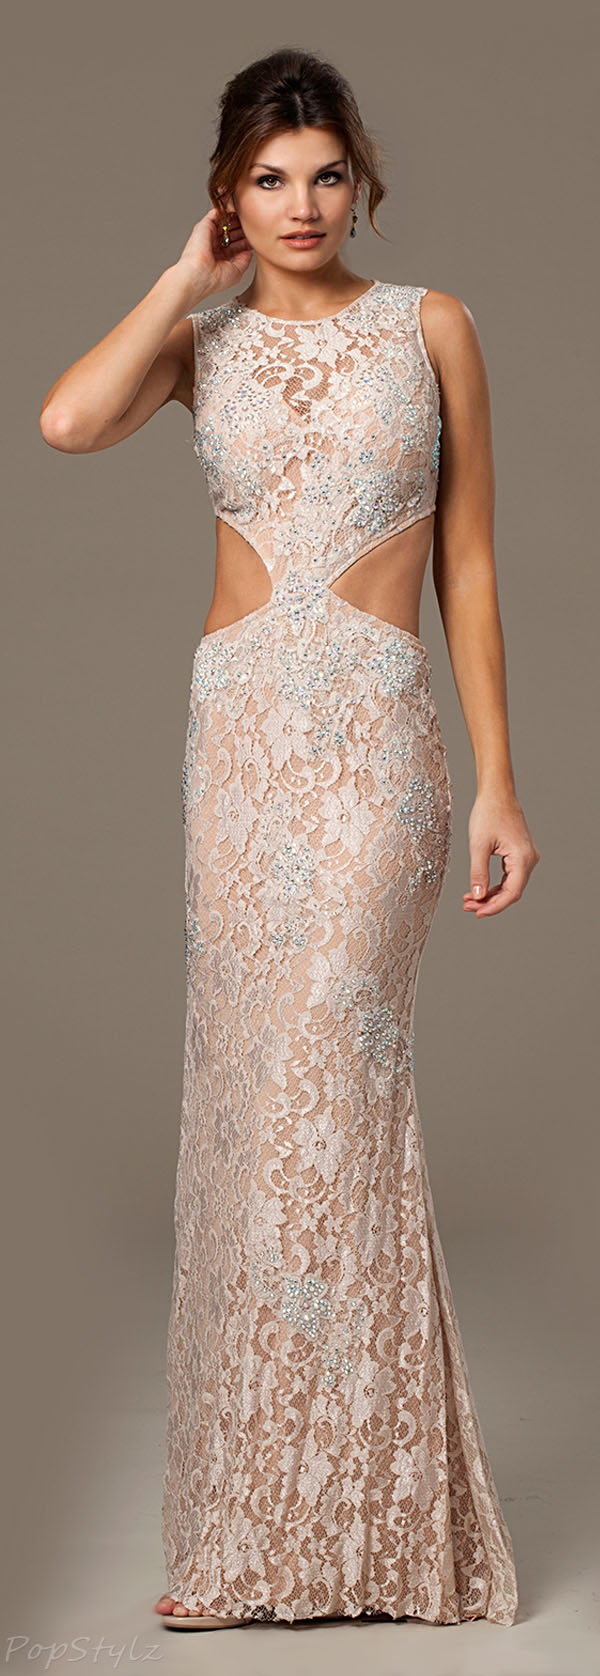 Jovani 92151 Champagne Long Lace Evening Gown